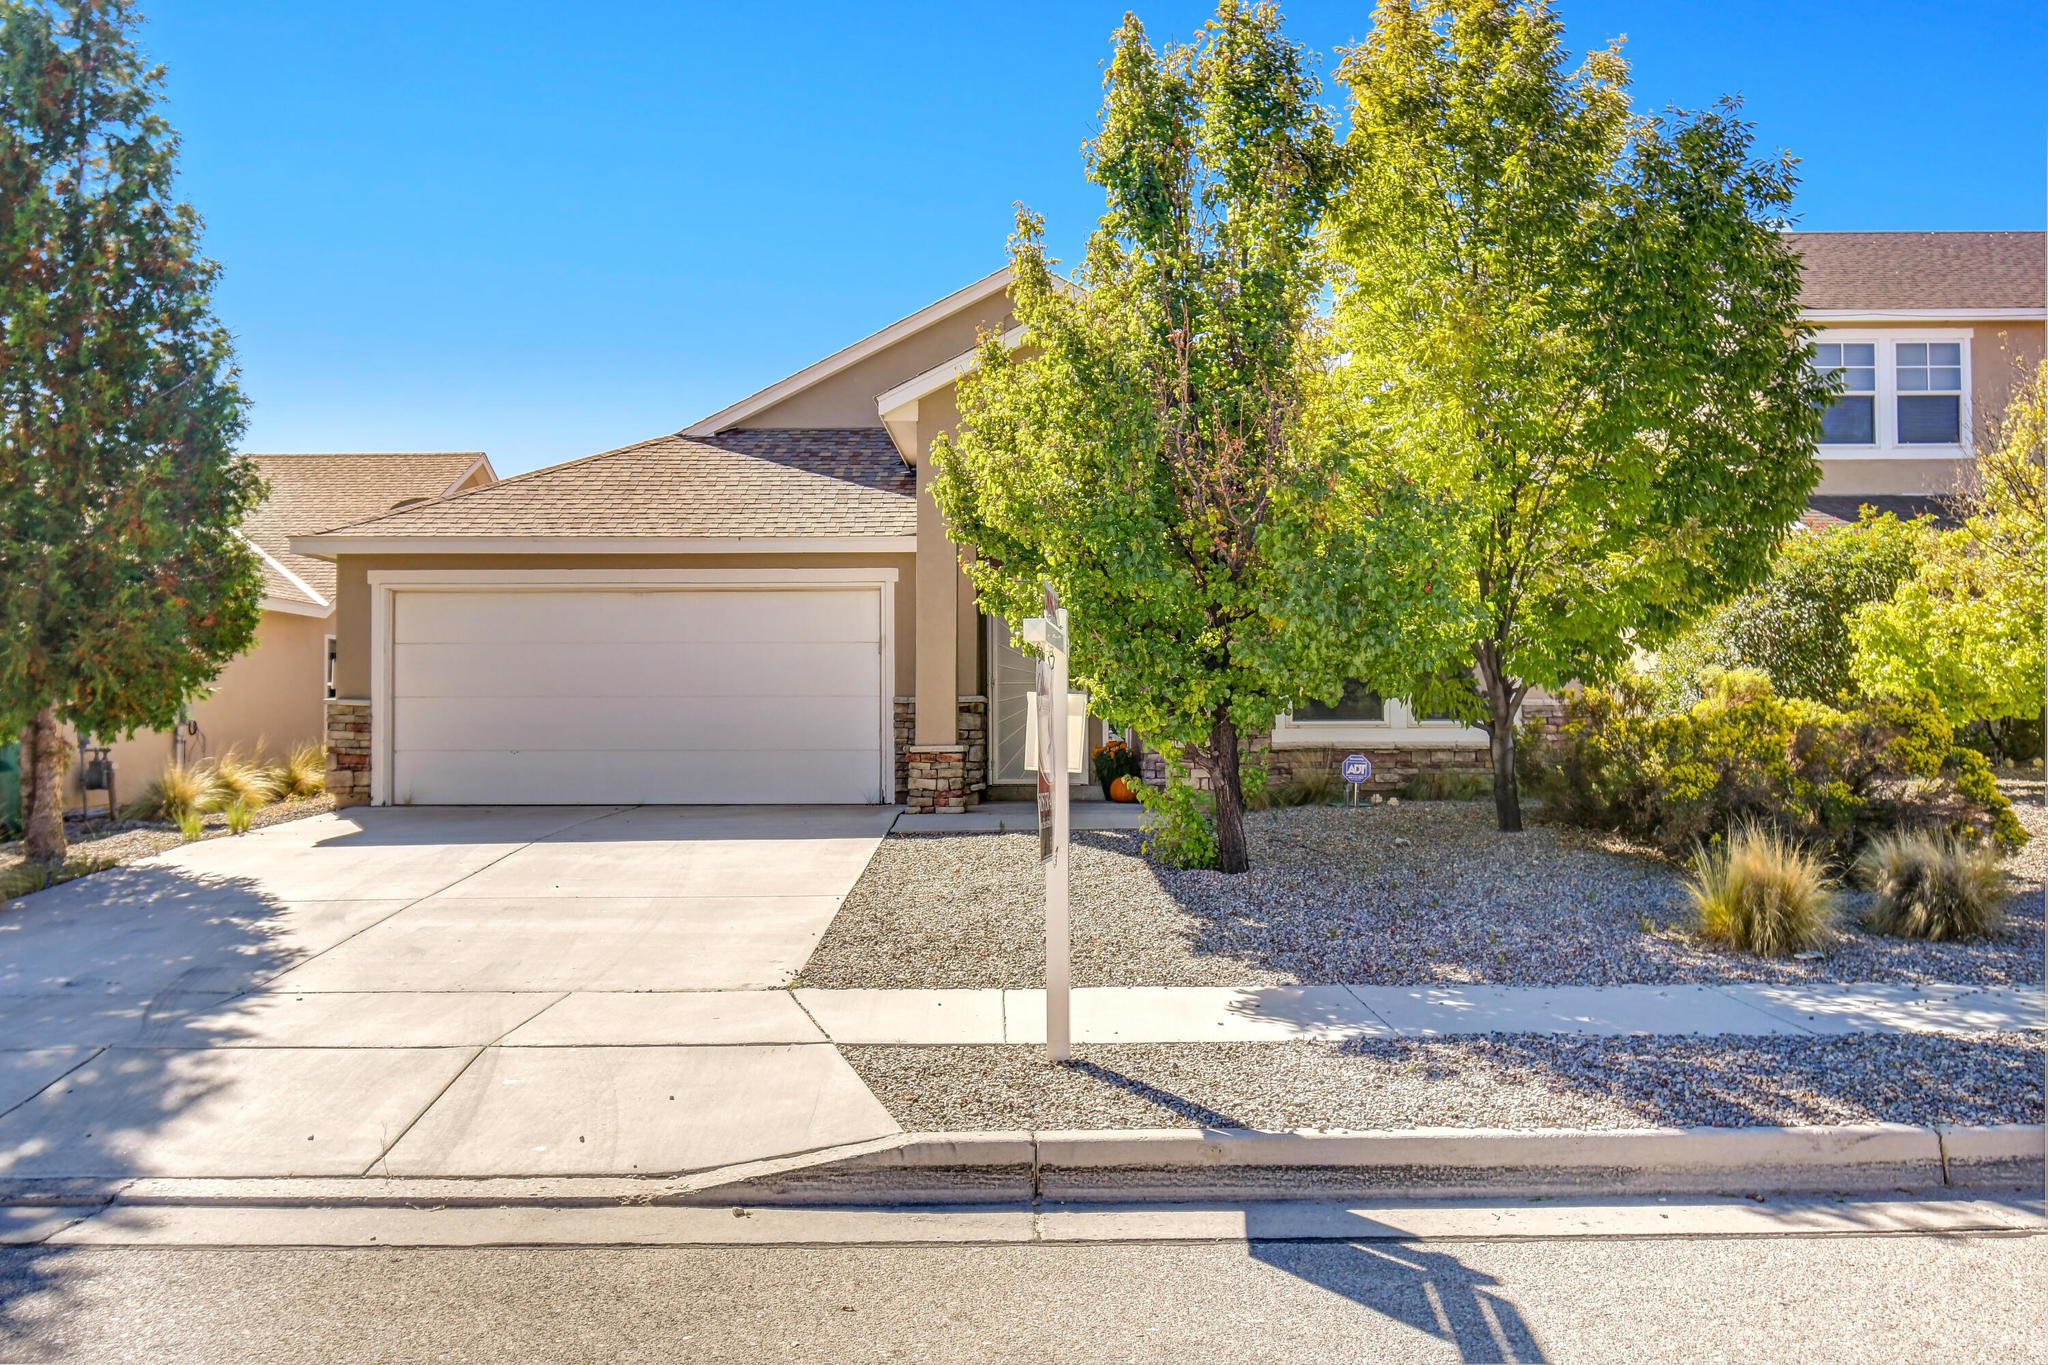 Upgraded 3-Bedroom House In Cabezon